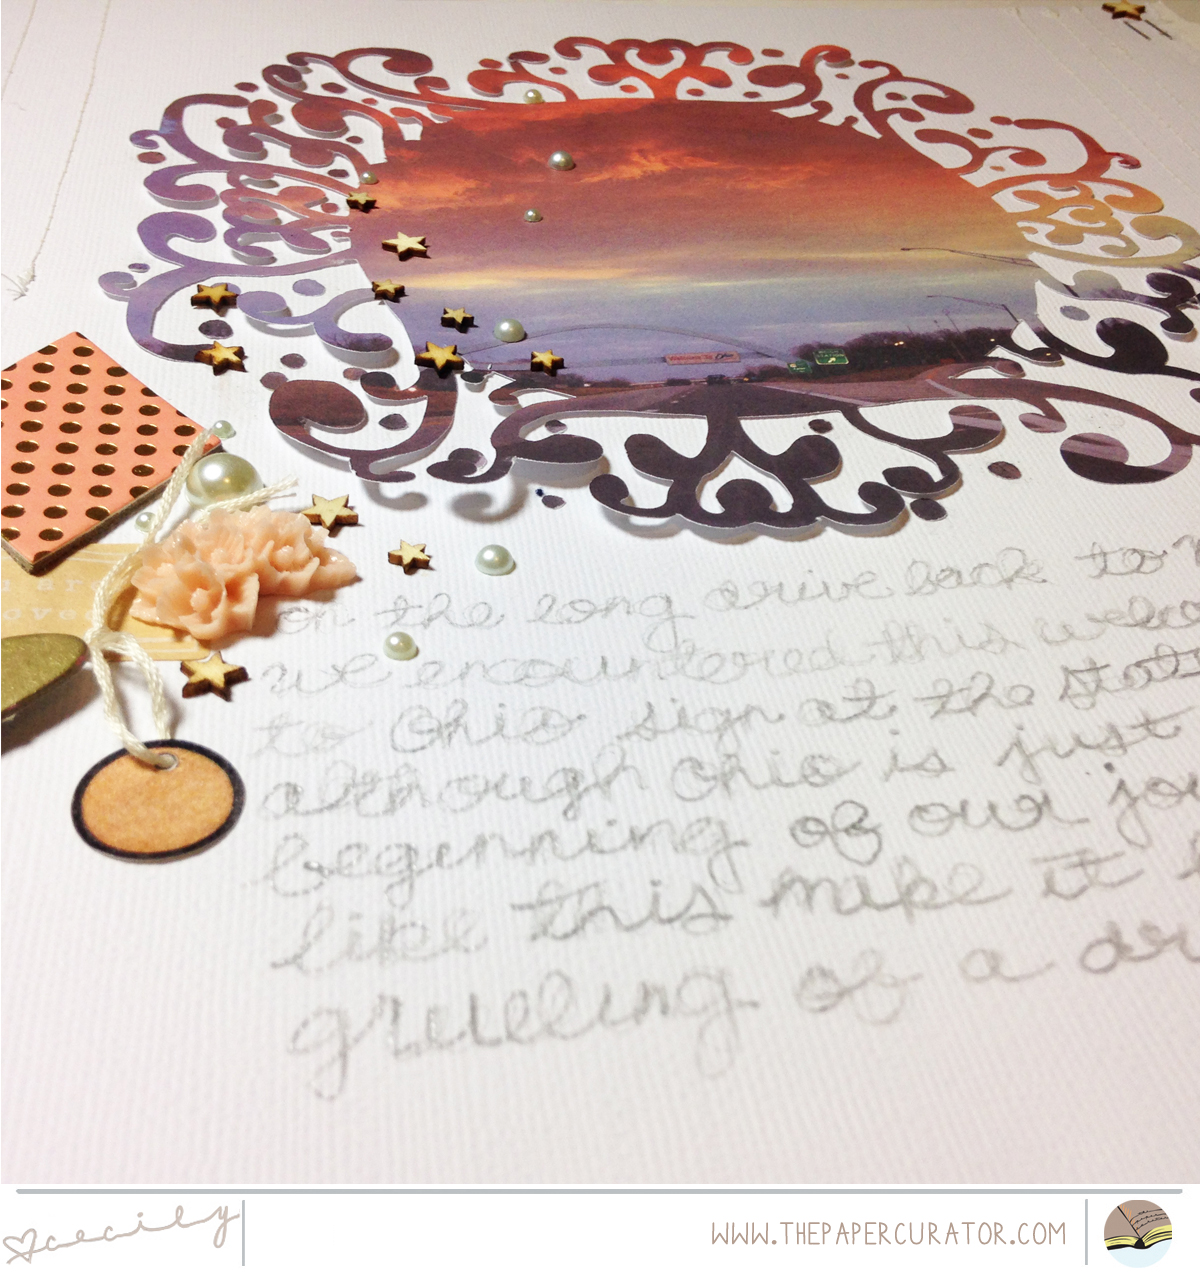 MAKING YOUR PHOTO THE STAR OF YOUR SCRAPBOOK PAGE | THE PAPER CURATOR